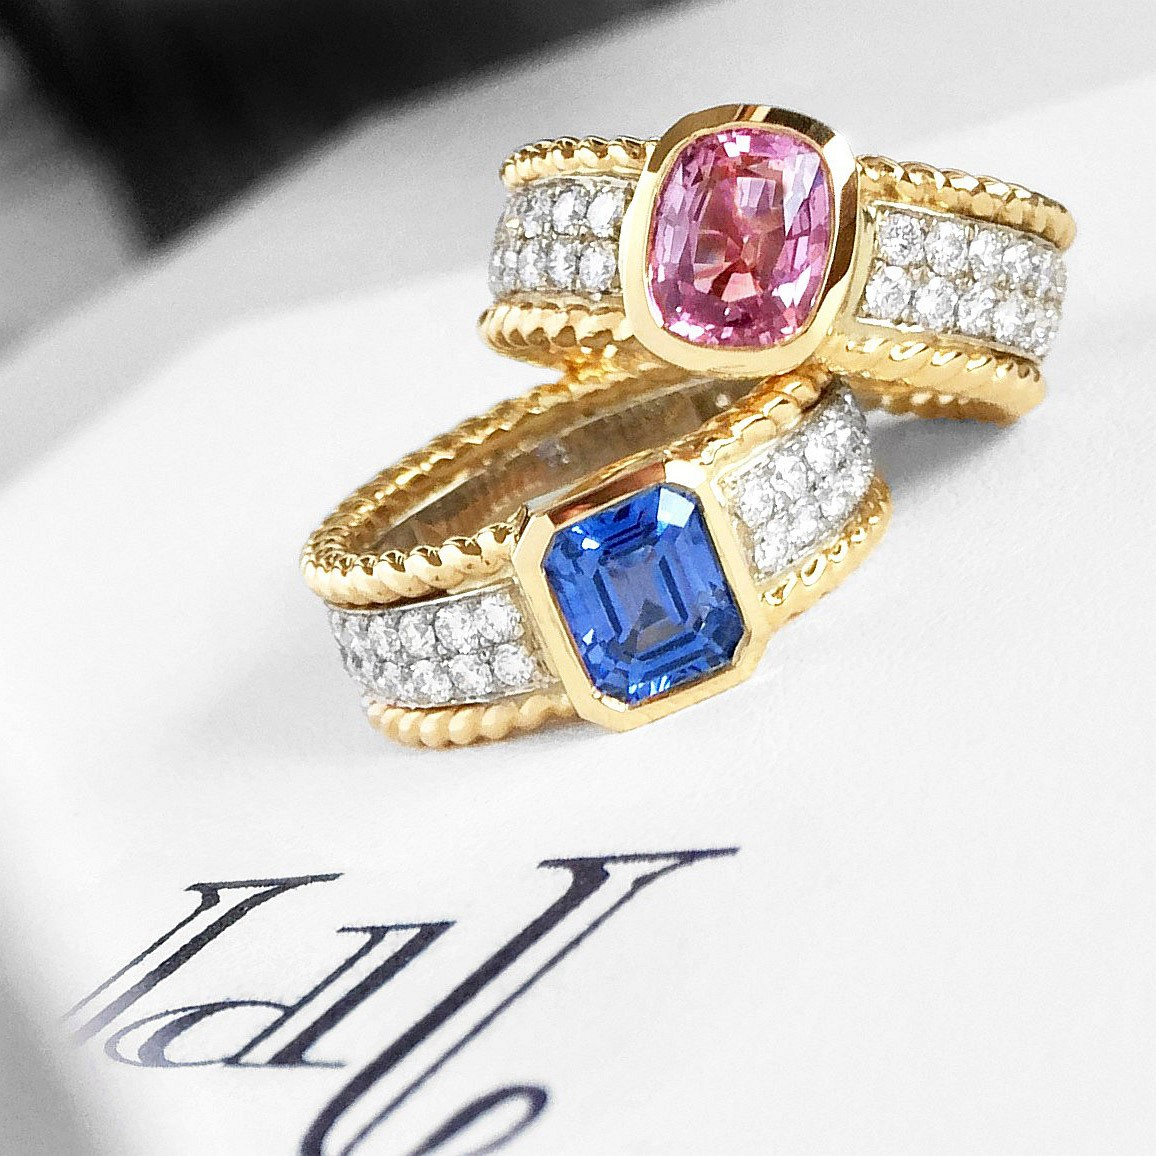 Braid Rings. Pink & Blue Sapphire. Diamonds